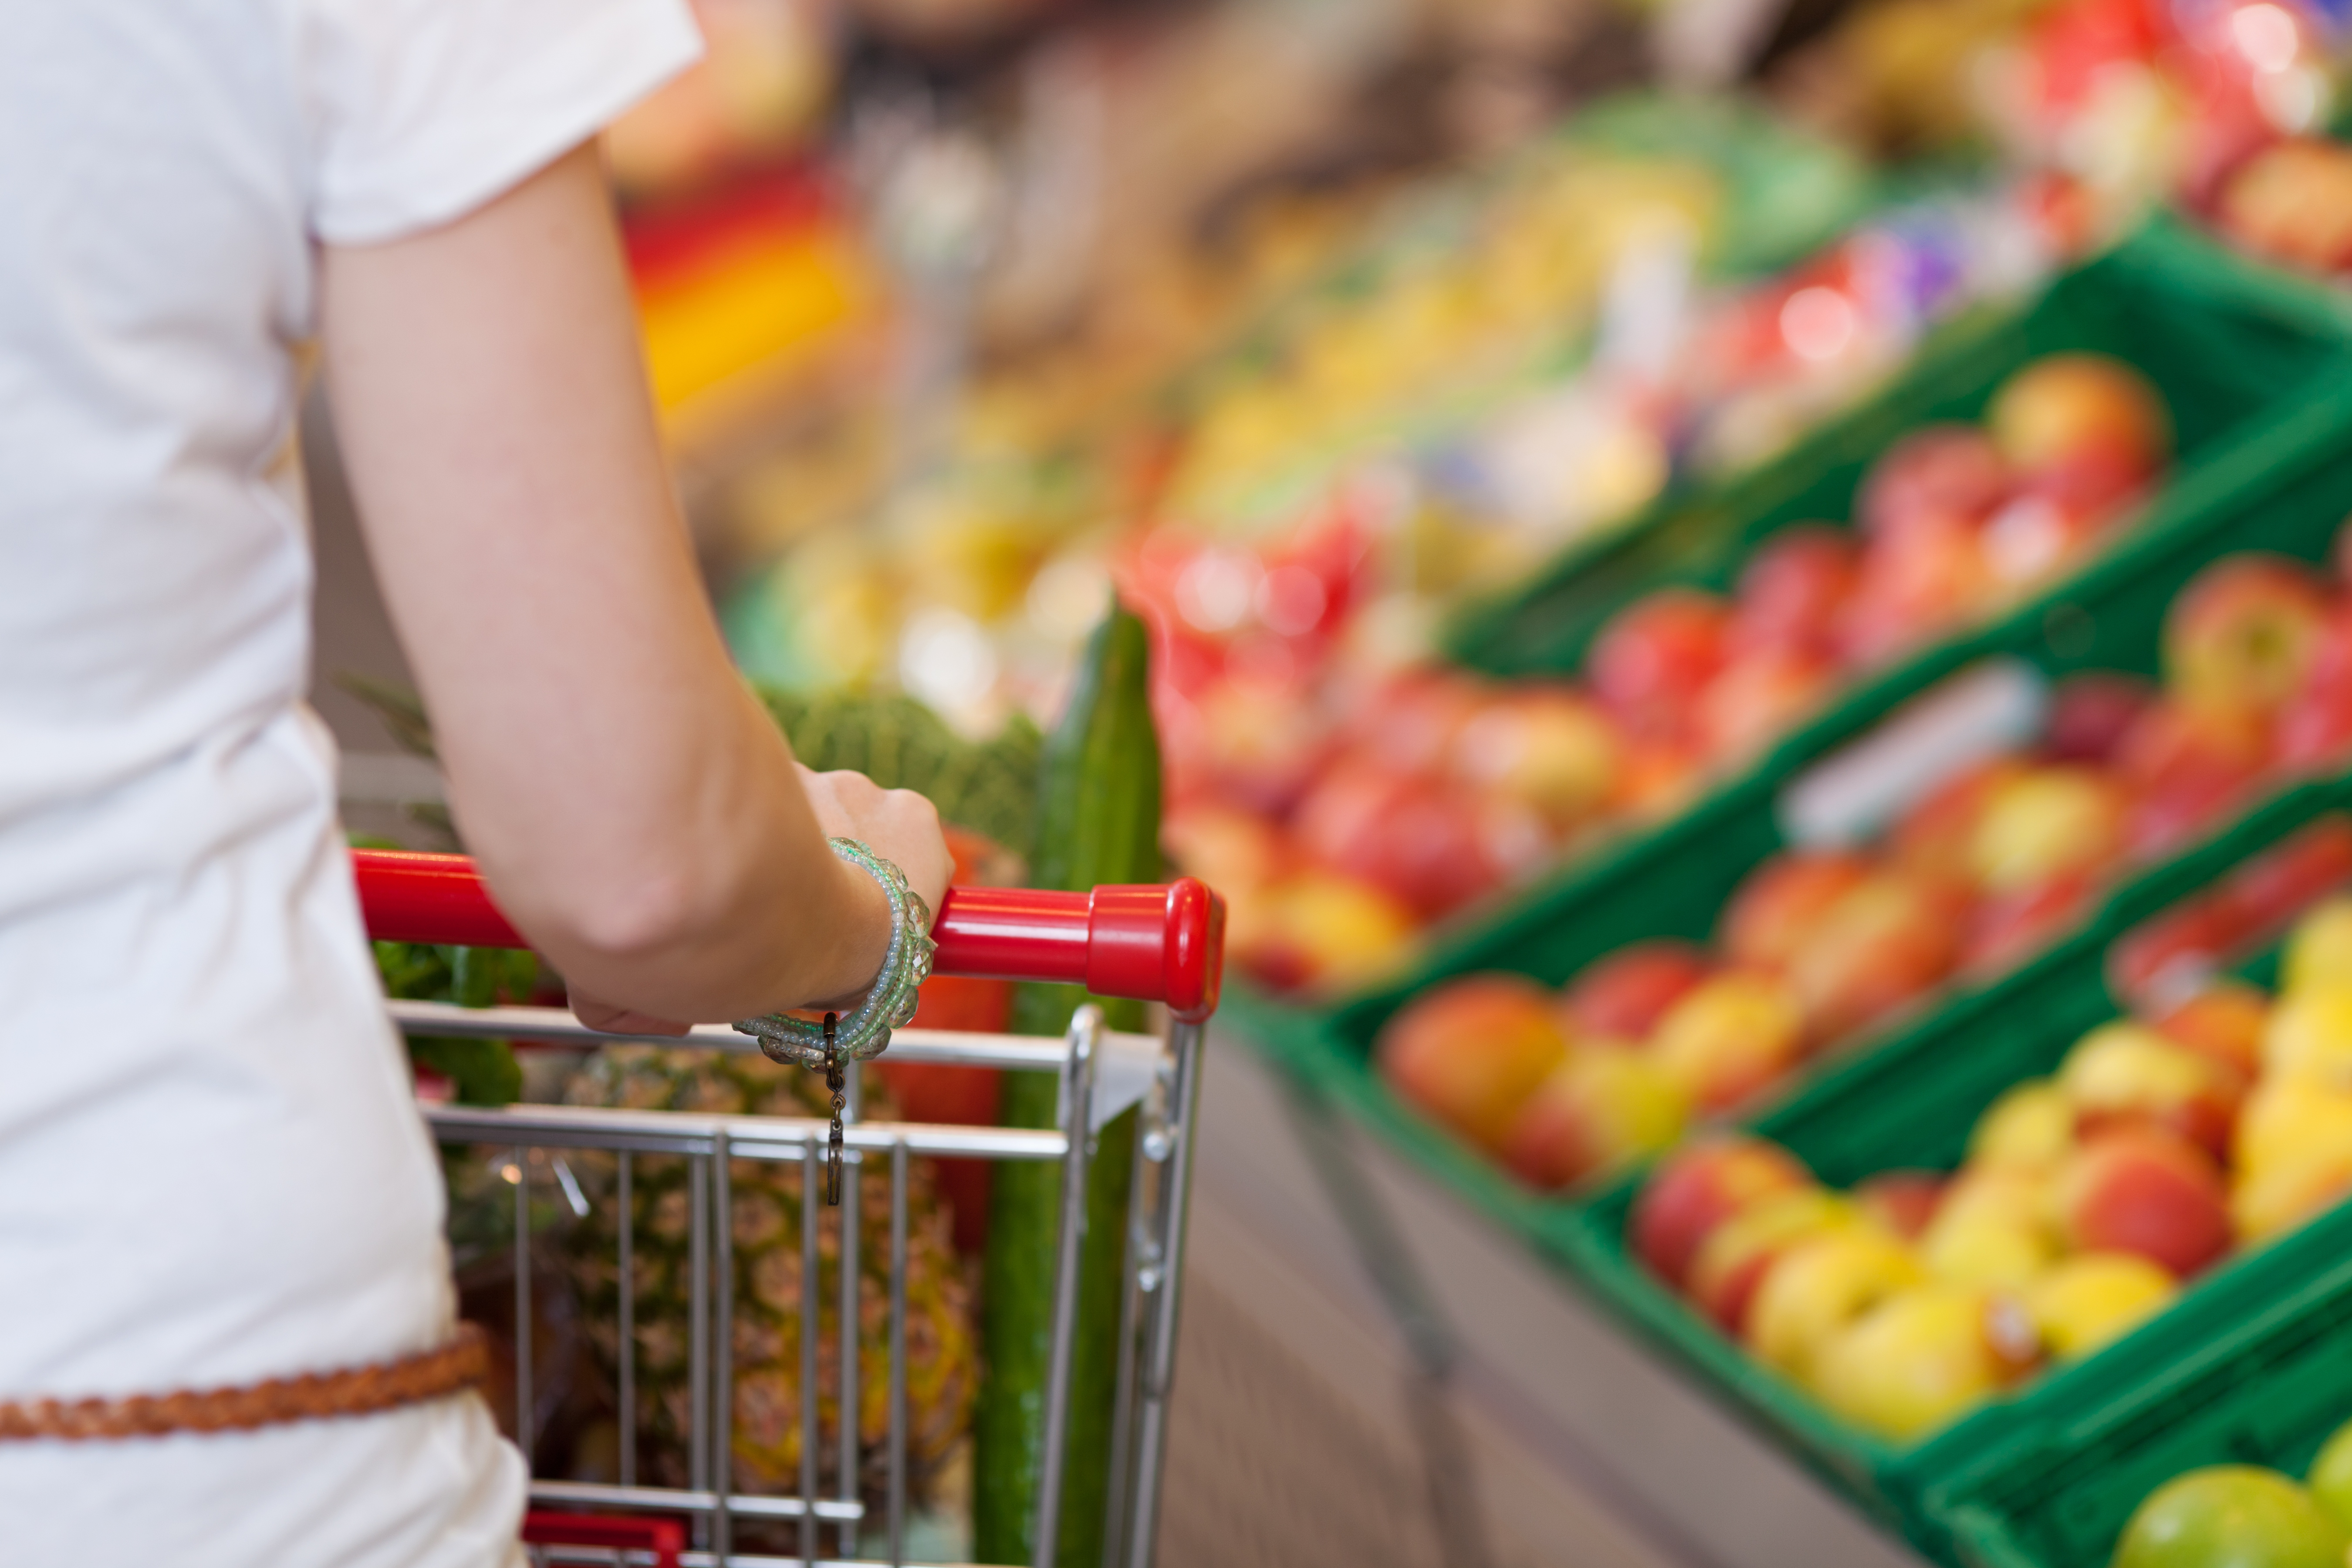 Grocery Shopping List Template--Get organized and save money with this Grocery Shopping List Template!